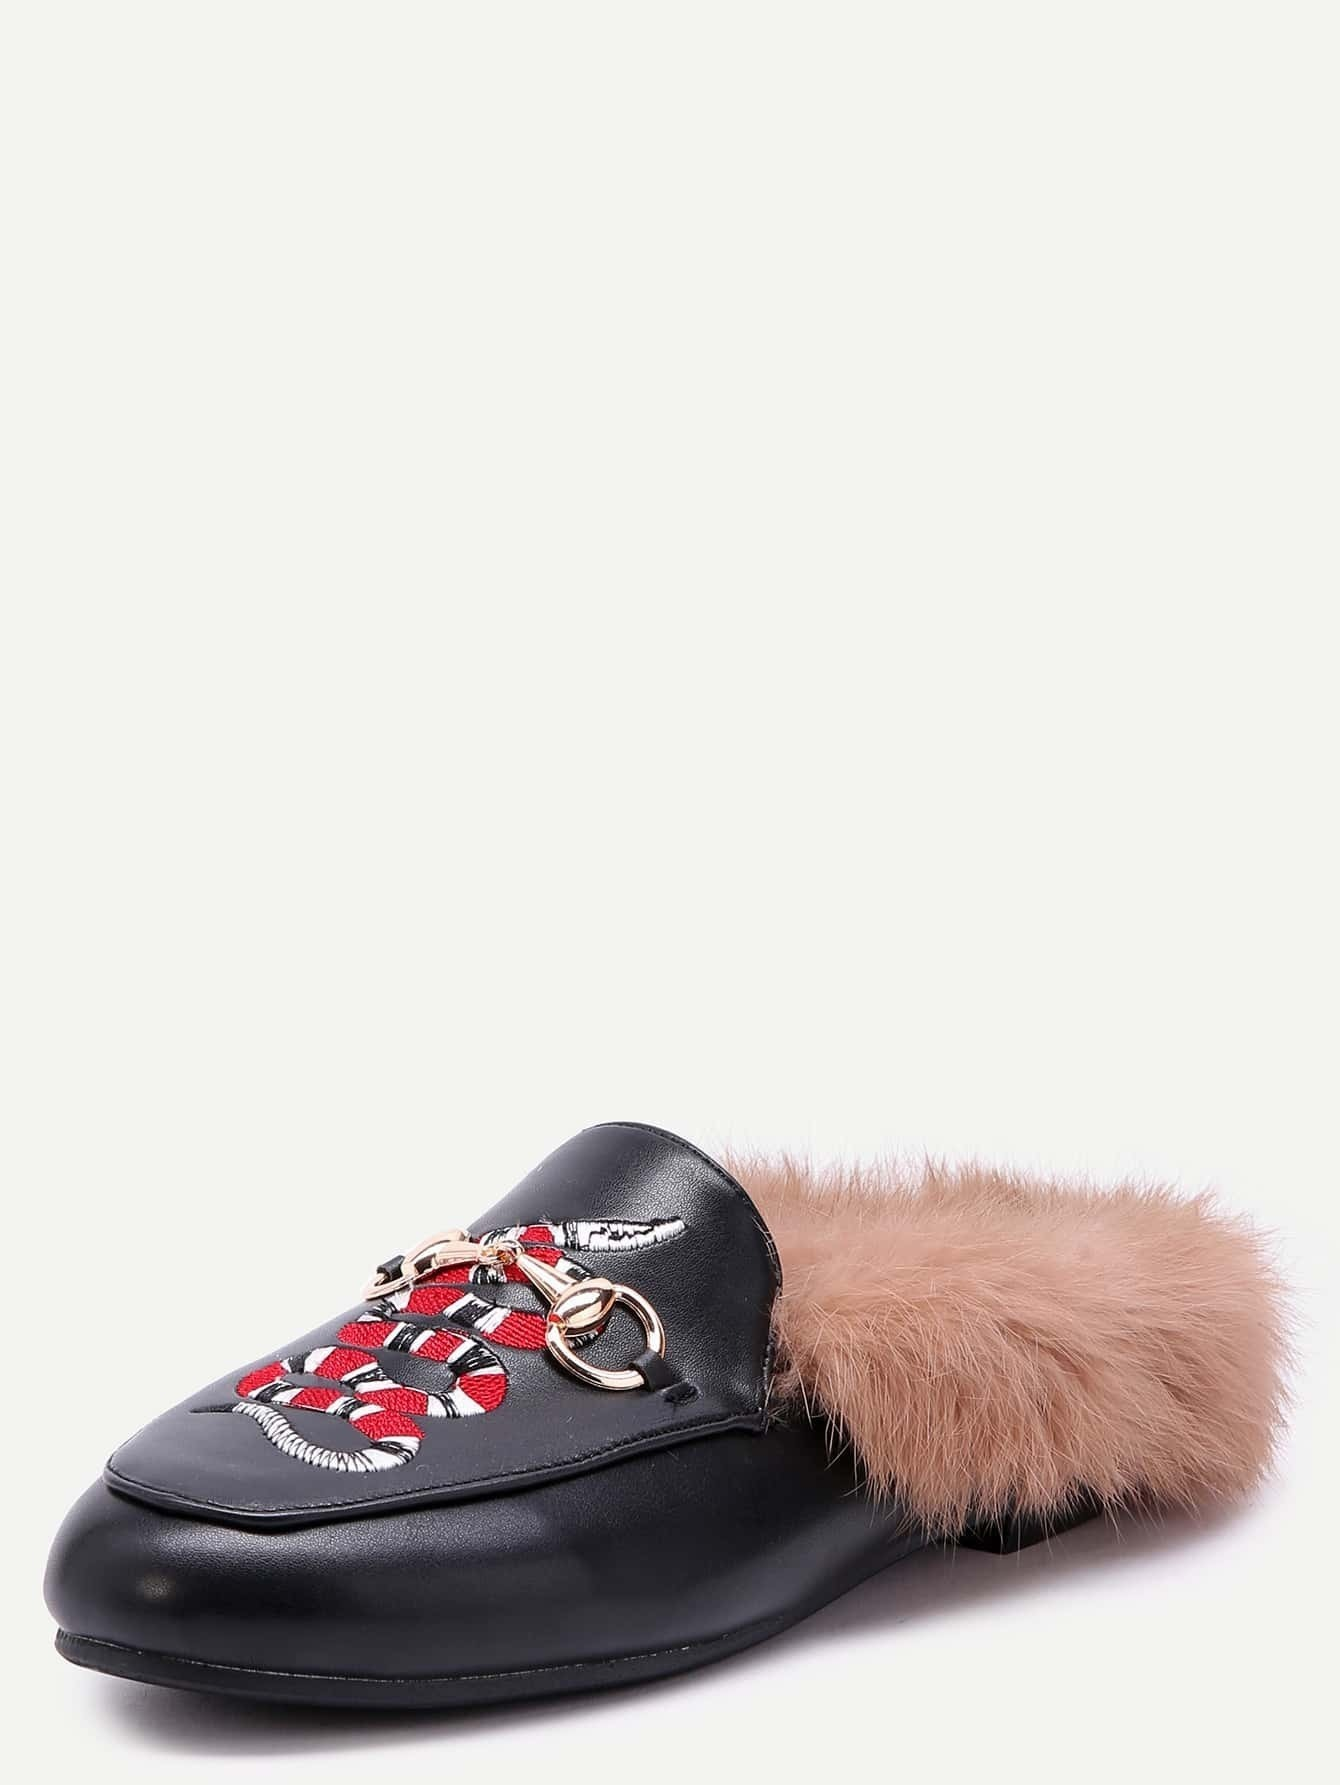 57a3bea4ea9 Black Snake Embroidered PU Fur Trim Loafer Slippers EmmaCloth-Women ...